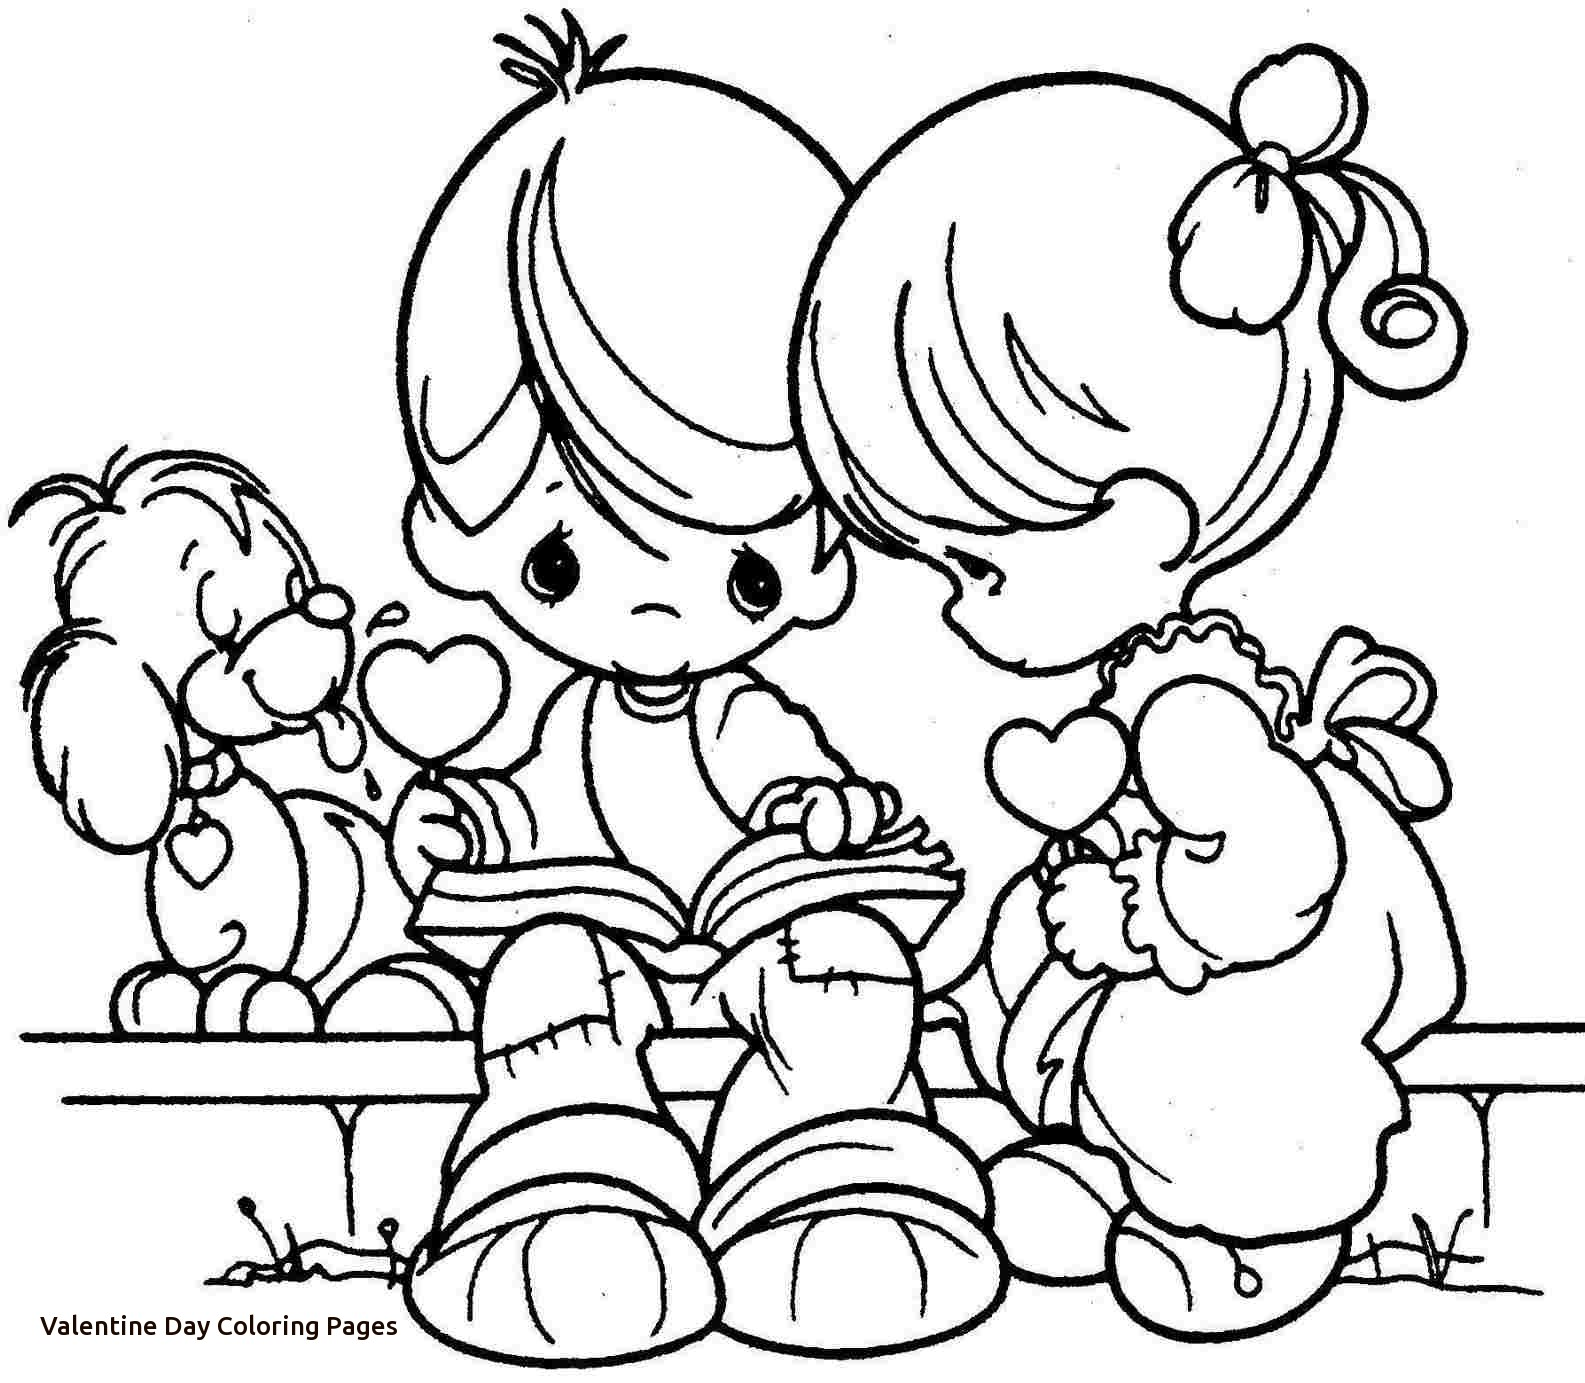 Valentines Day Coloring Pages For Adults At Getcolorings